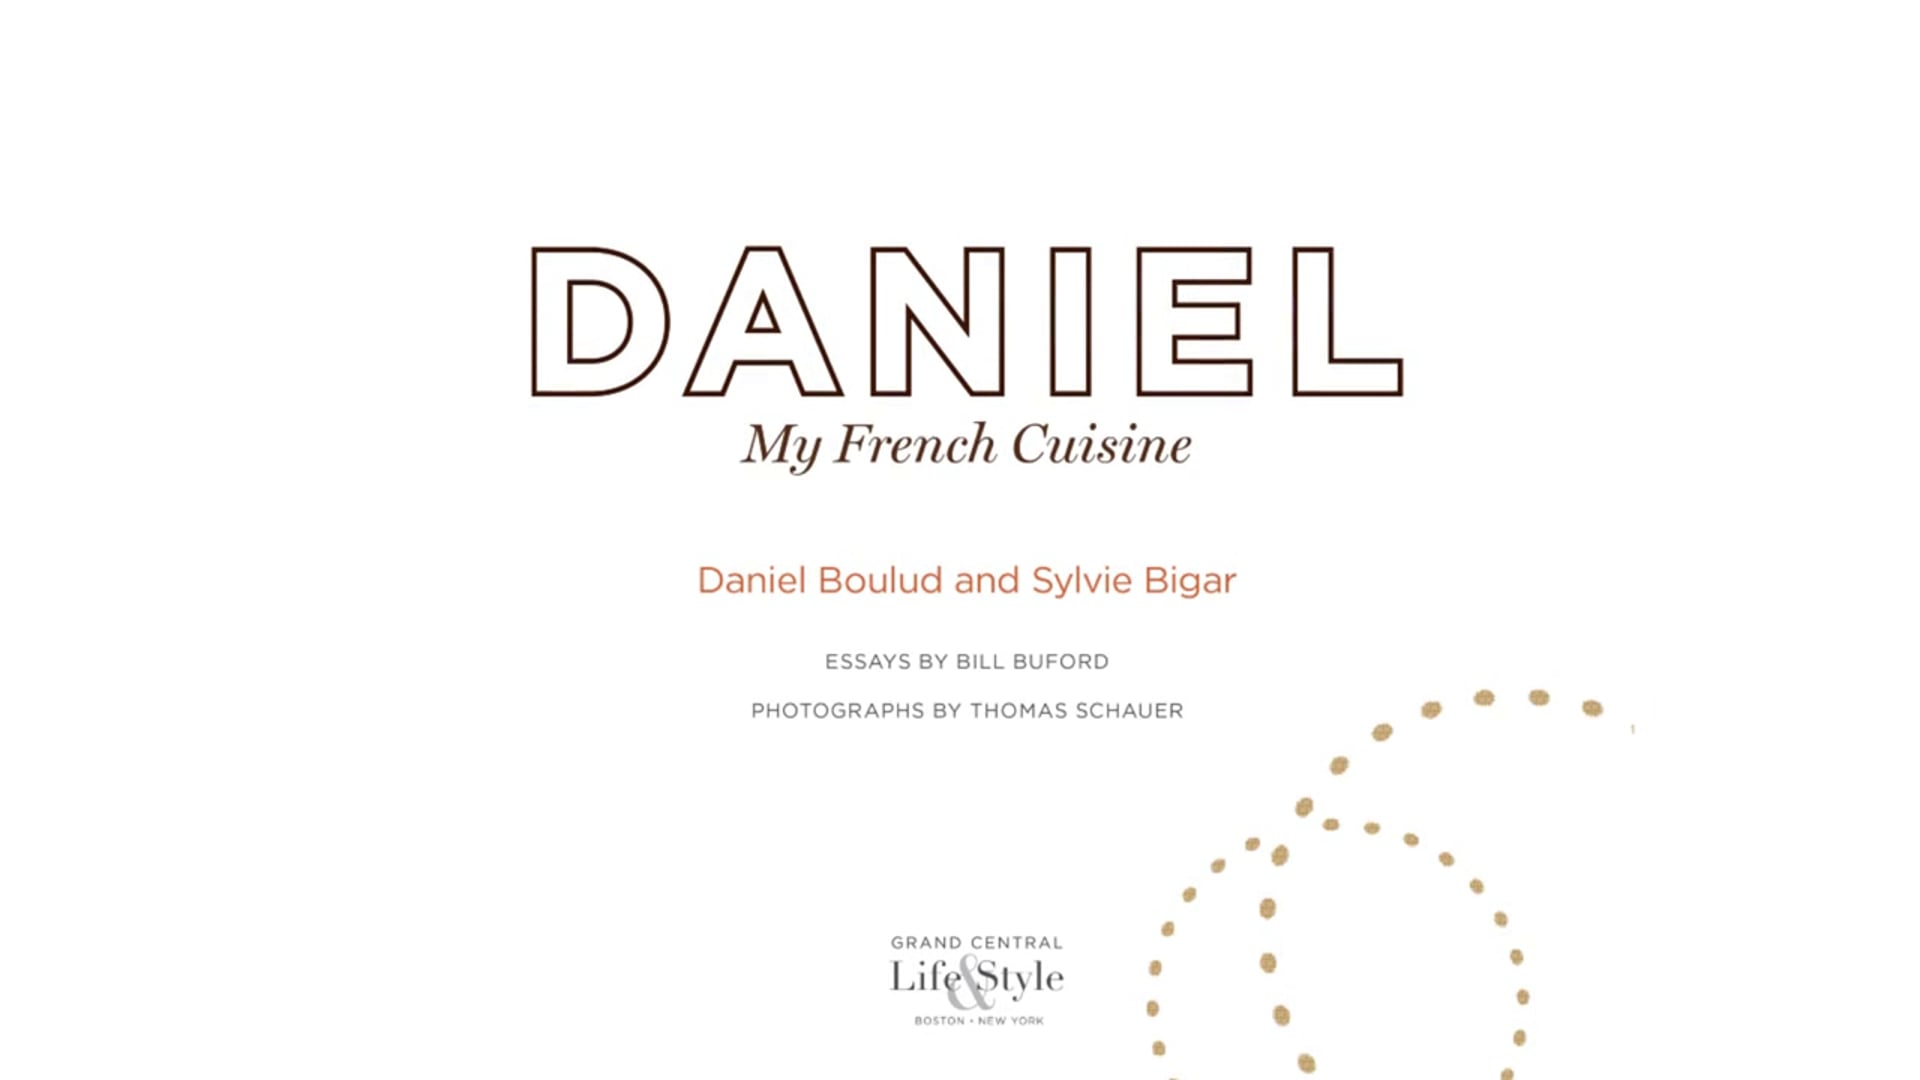 DANIEL BOULUD My French Cuisine - the making of the book